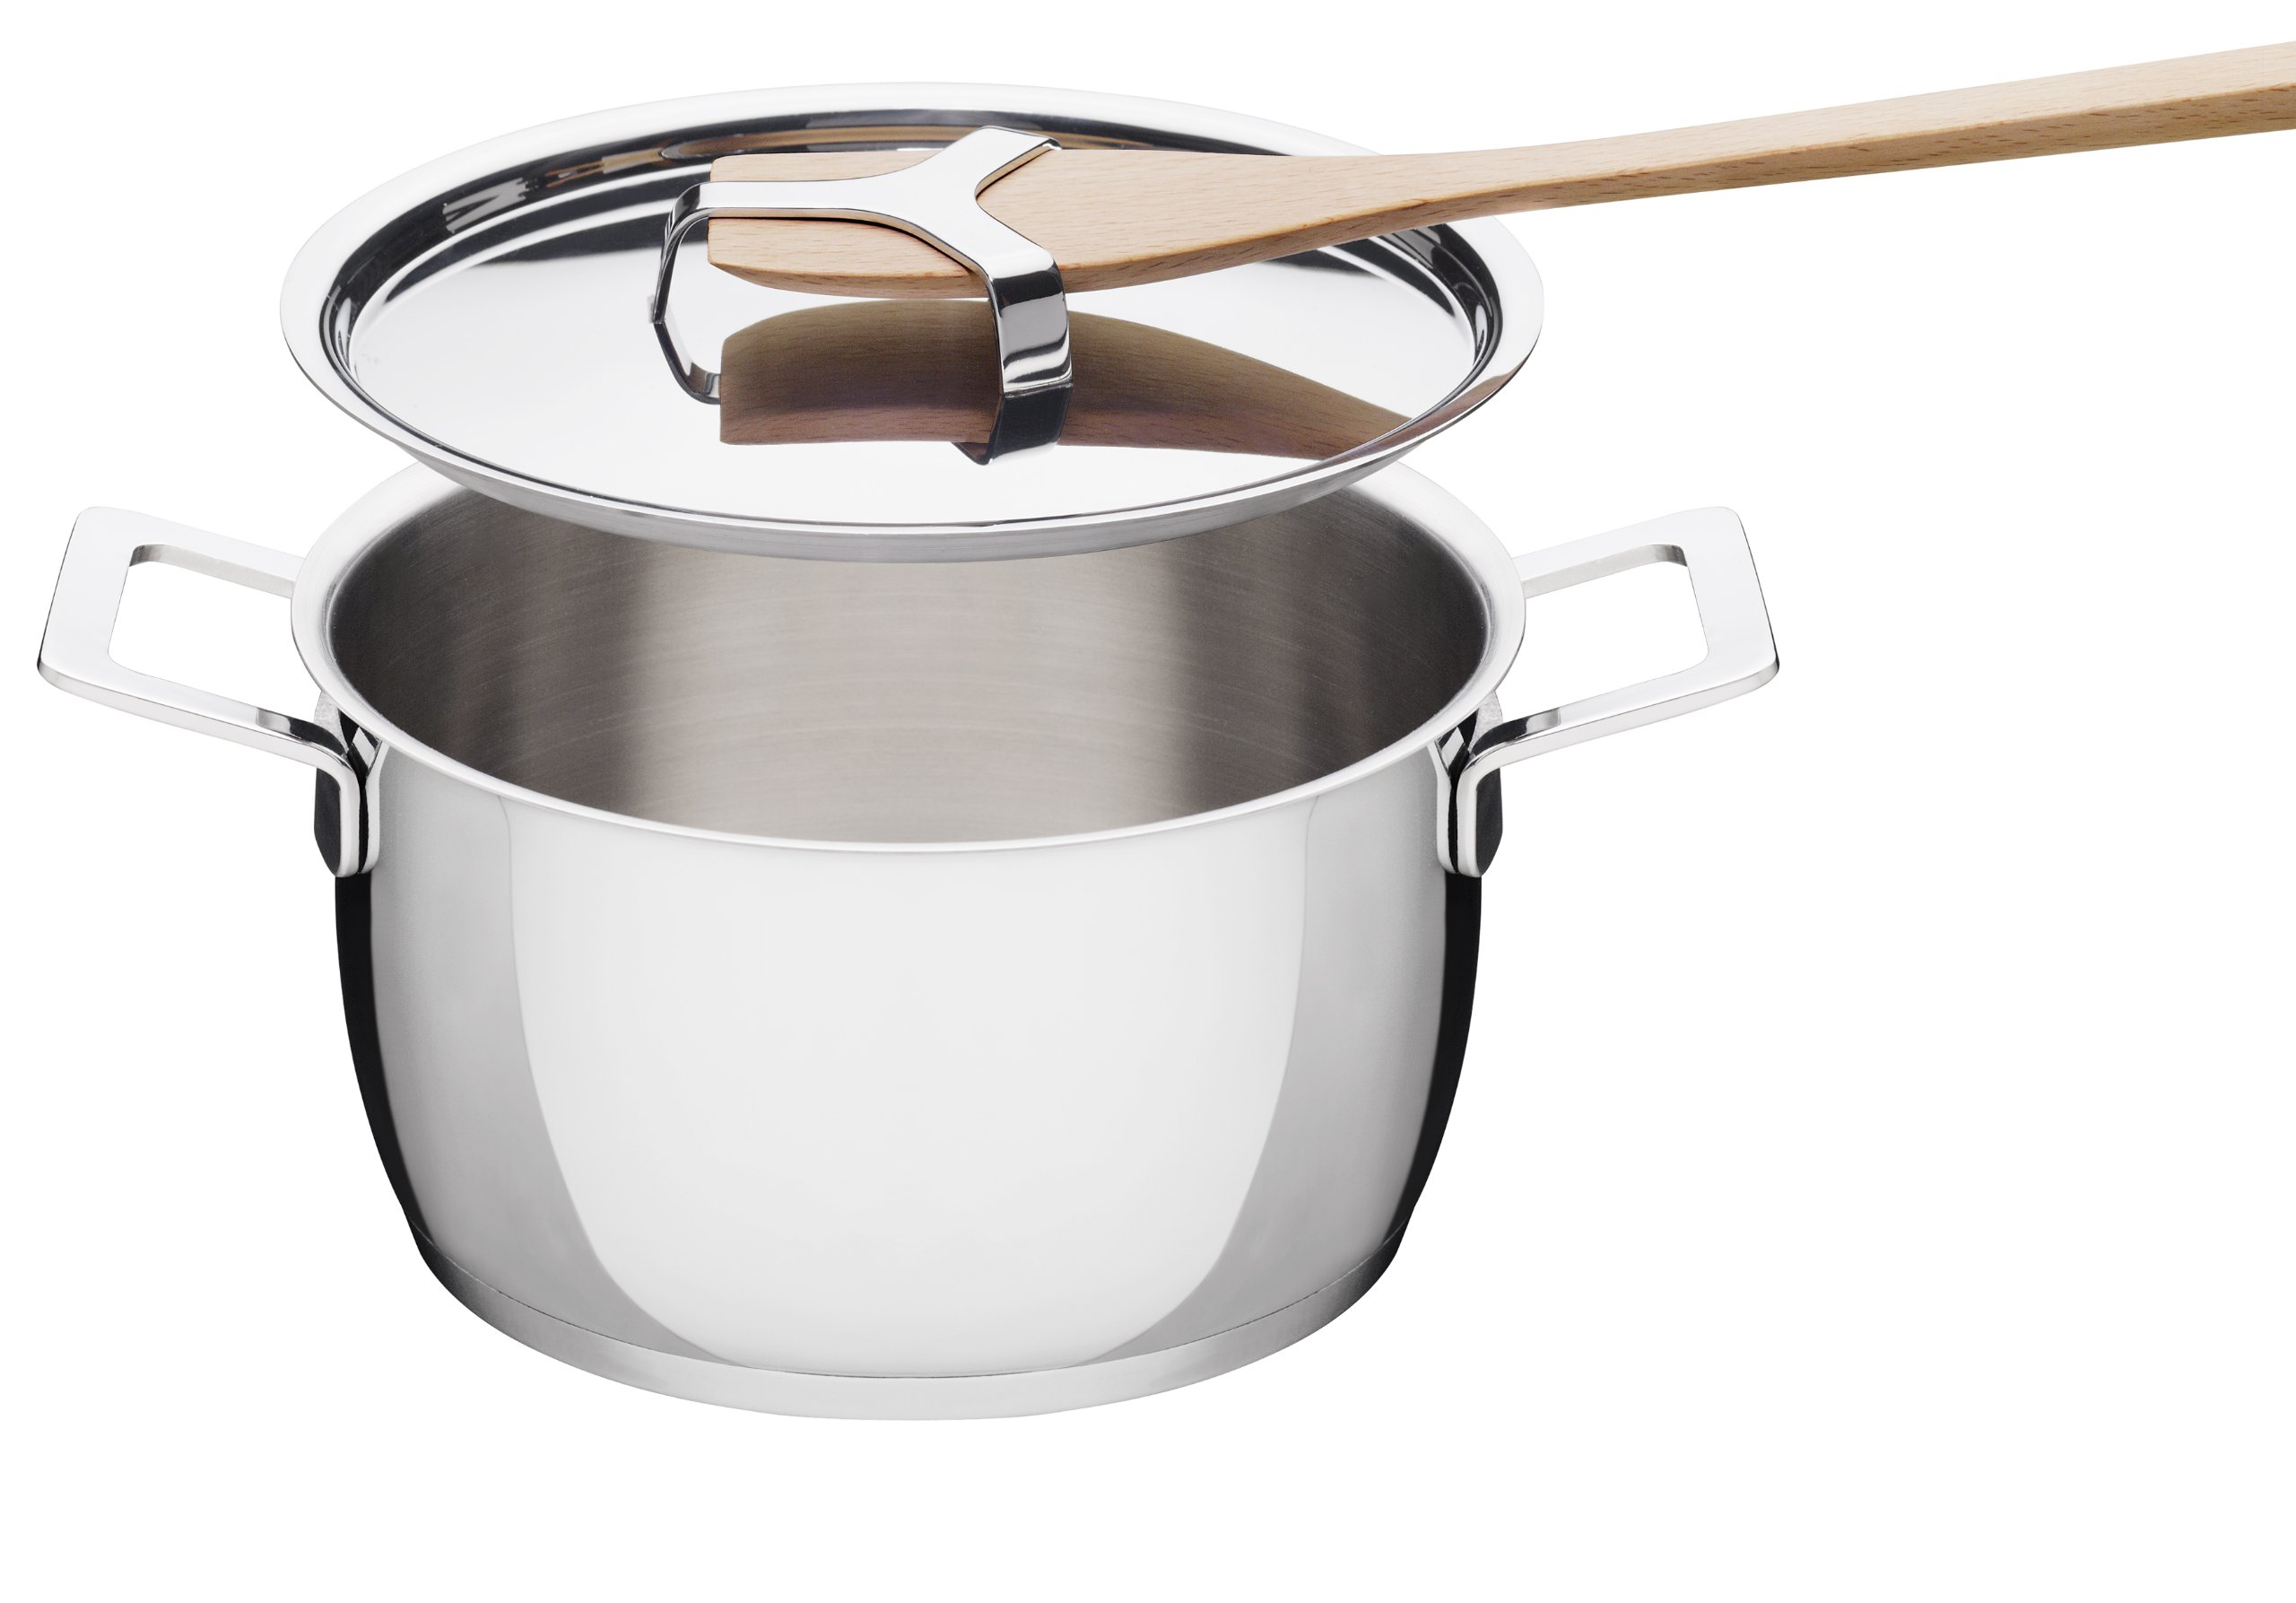 A Di Alessi,AJM101/24 ''POTS & PANS'', Casserole with two handles in 18/10 stainless steel mirror polished,5 qt 27 oz